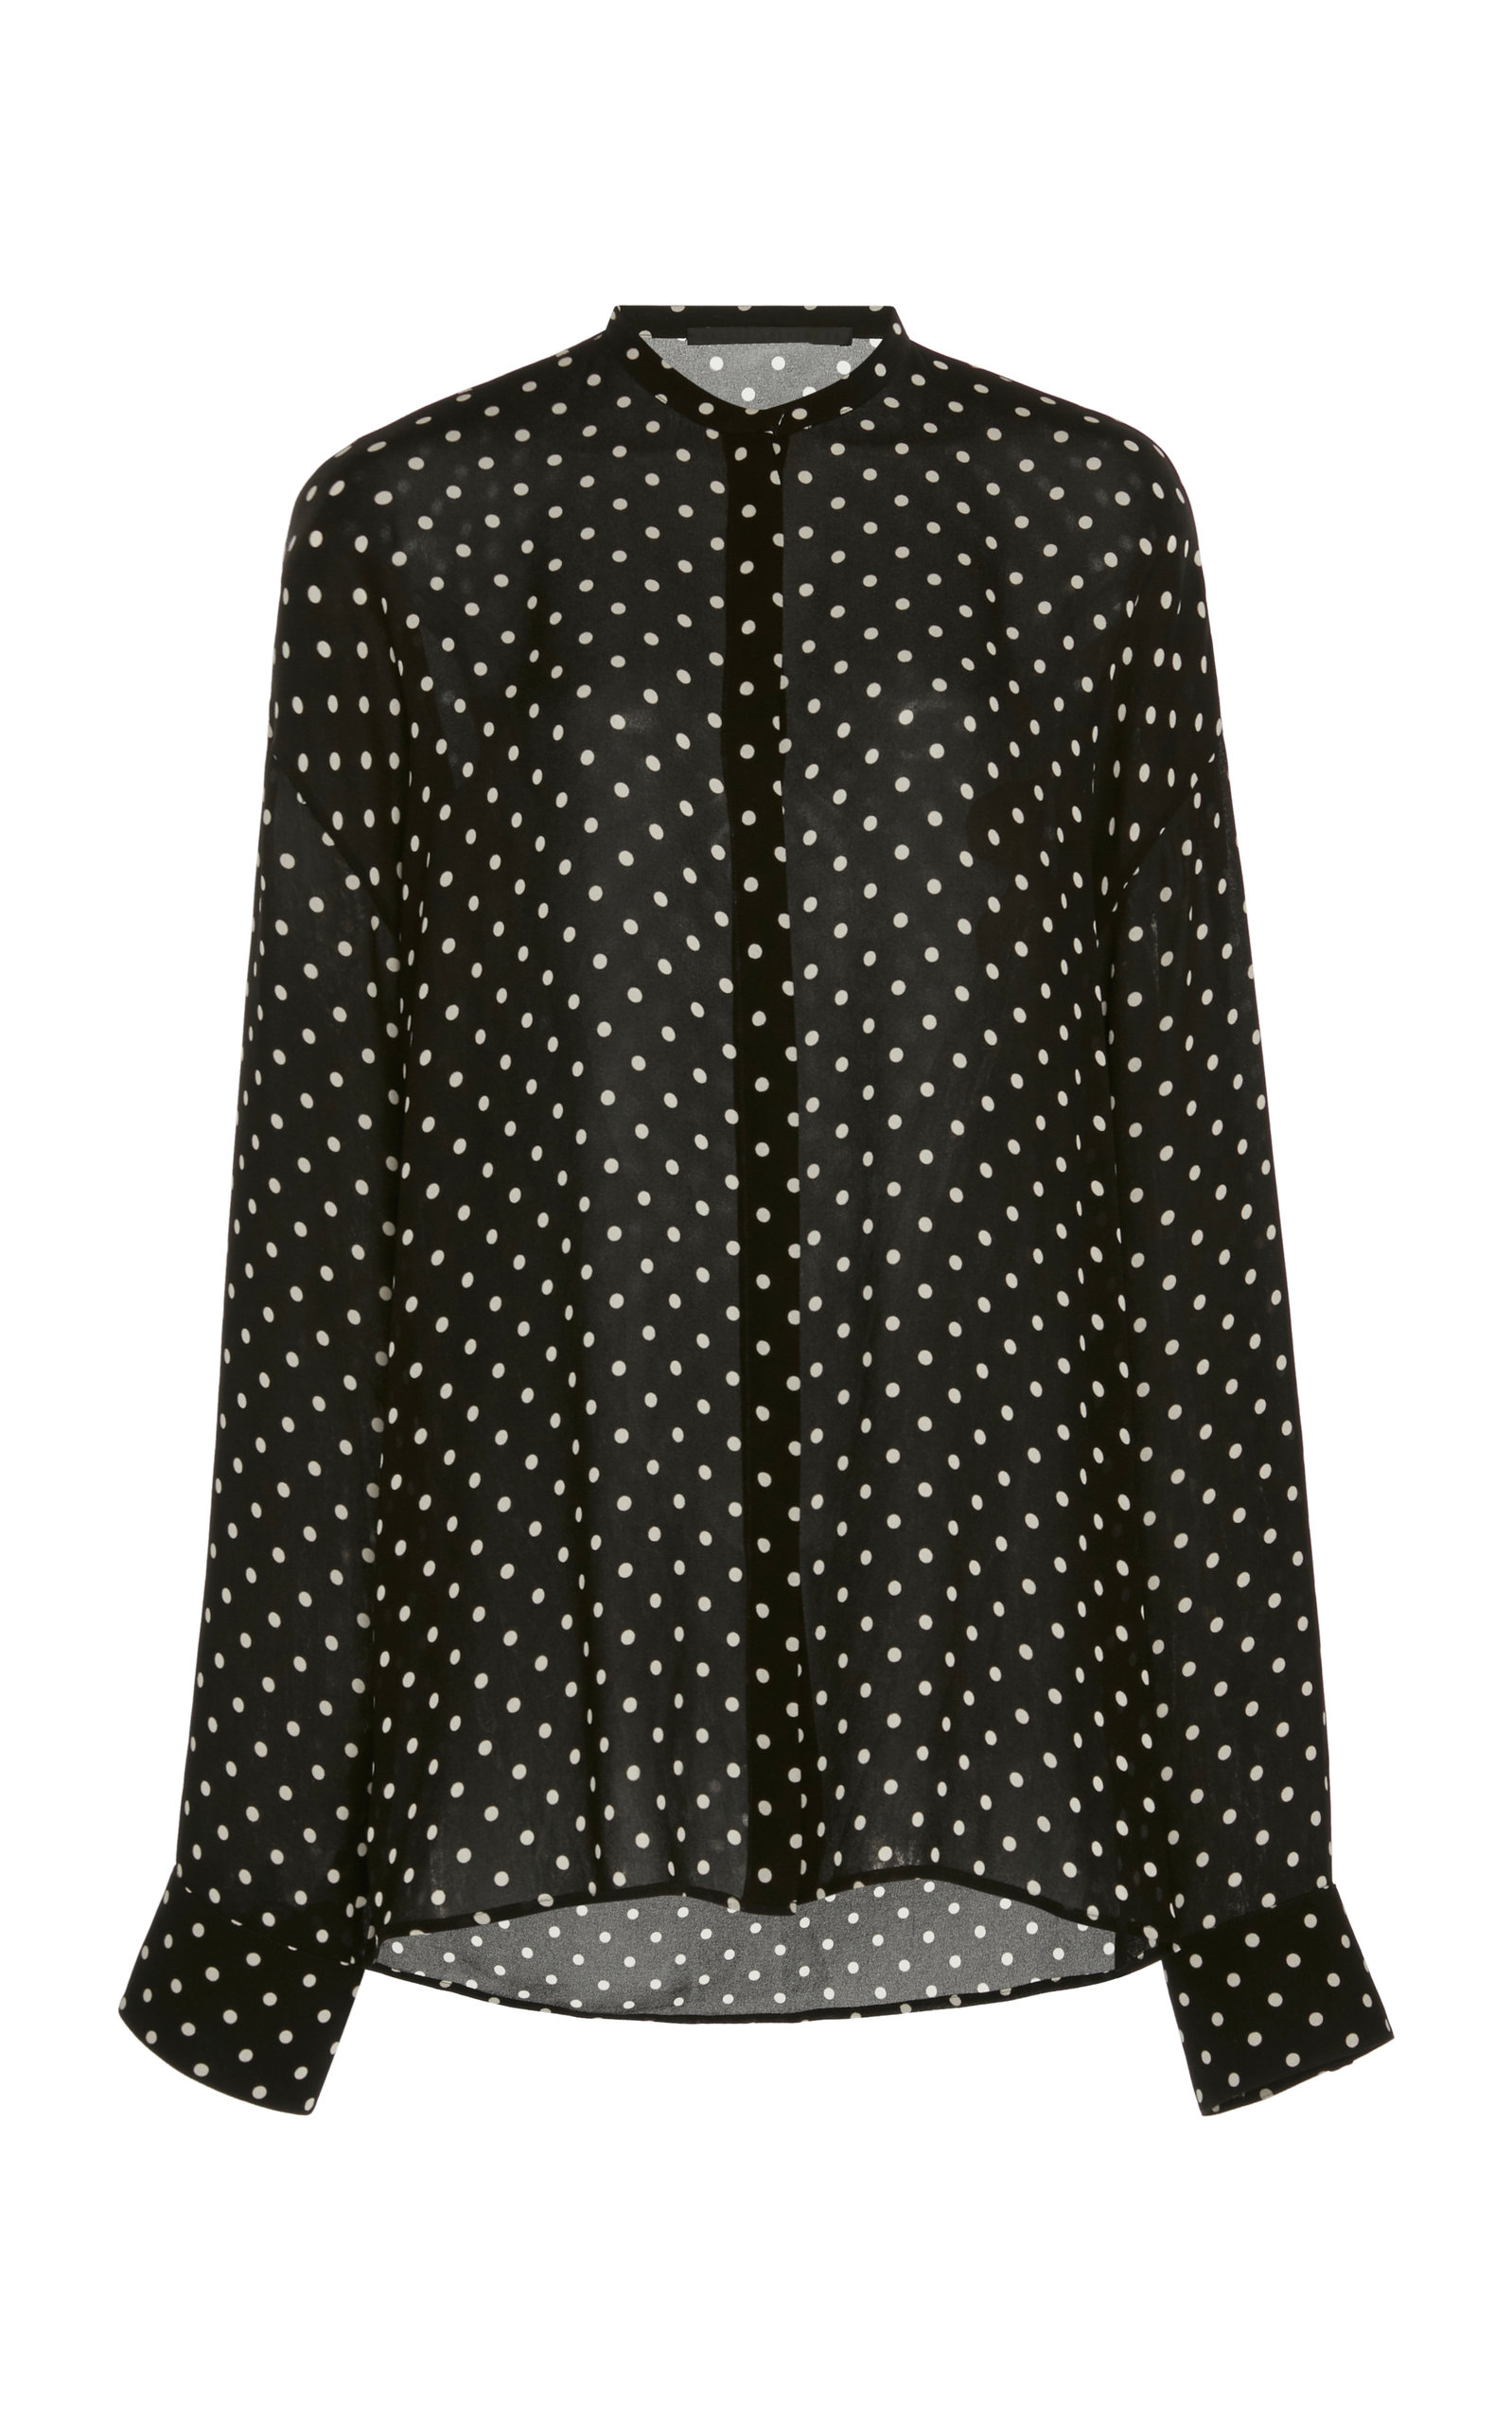 Haider Ackermann OVERSIZED SILK POLKA DOT SHIRT